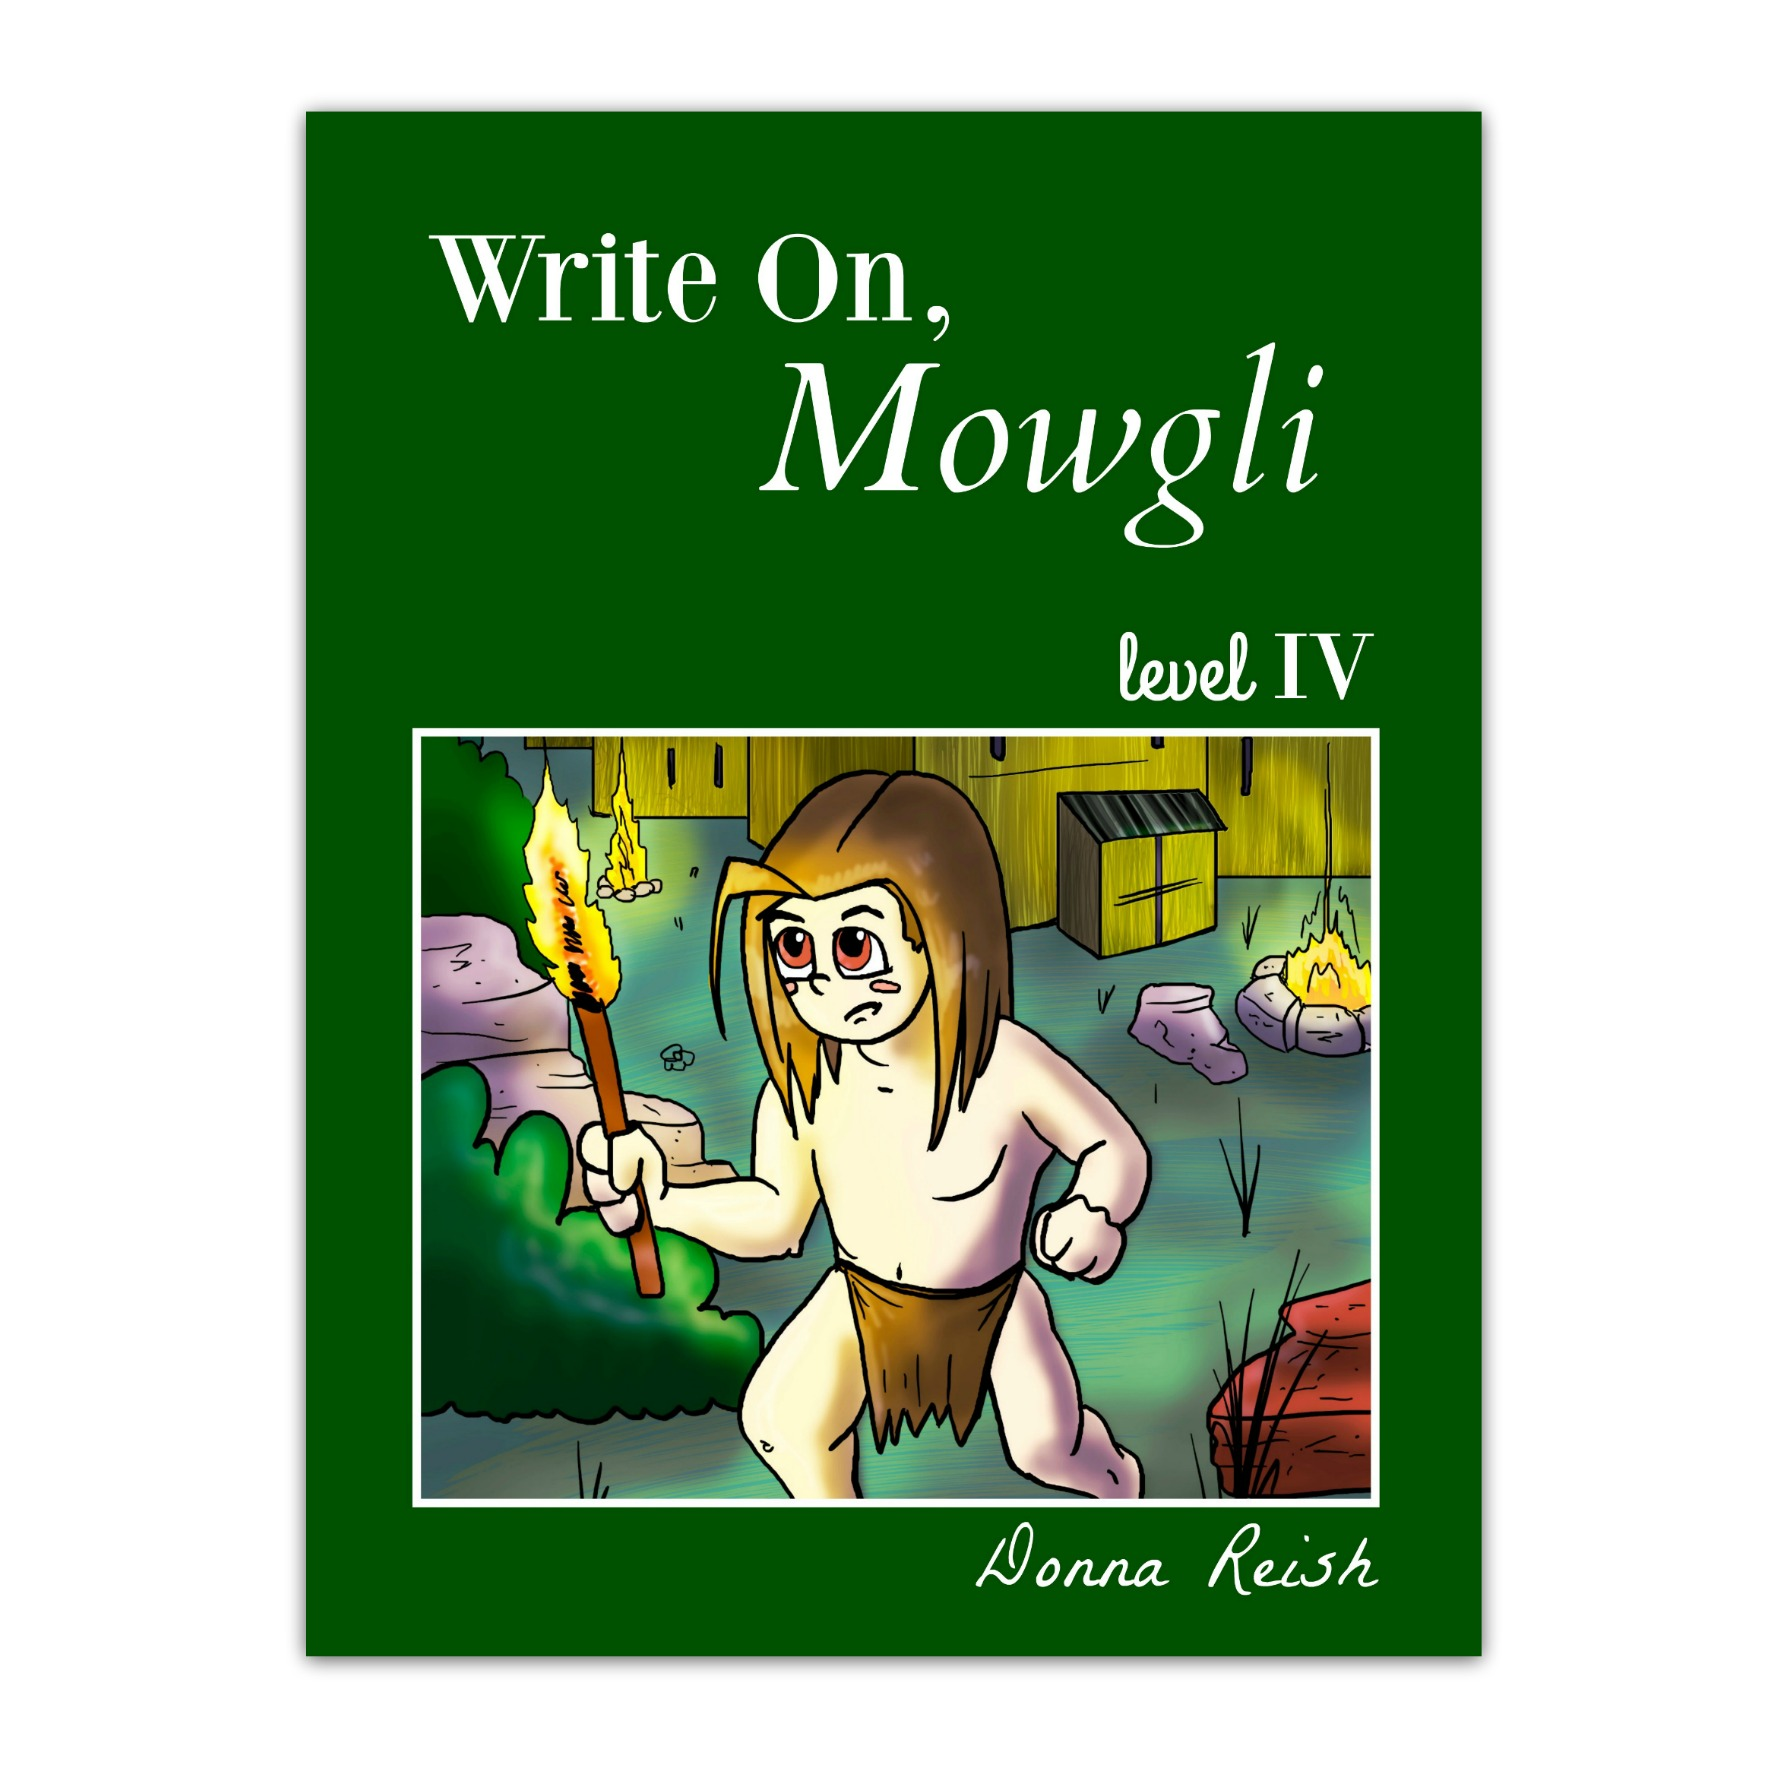 Write On Mowgli Level IV